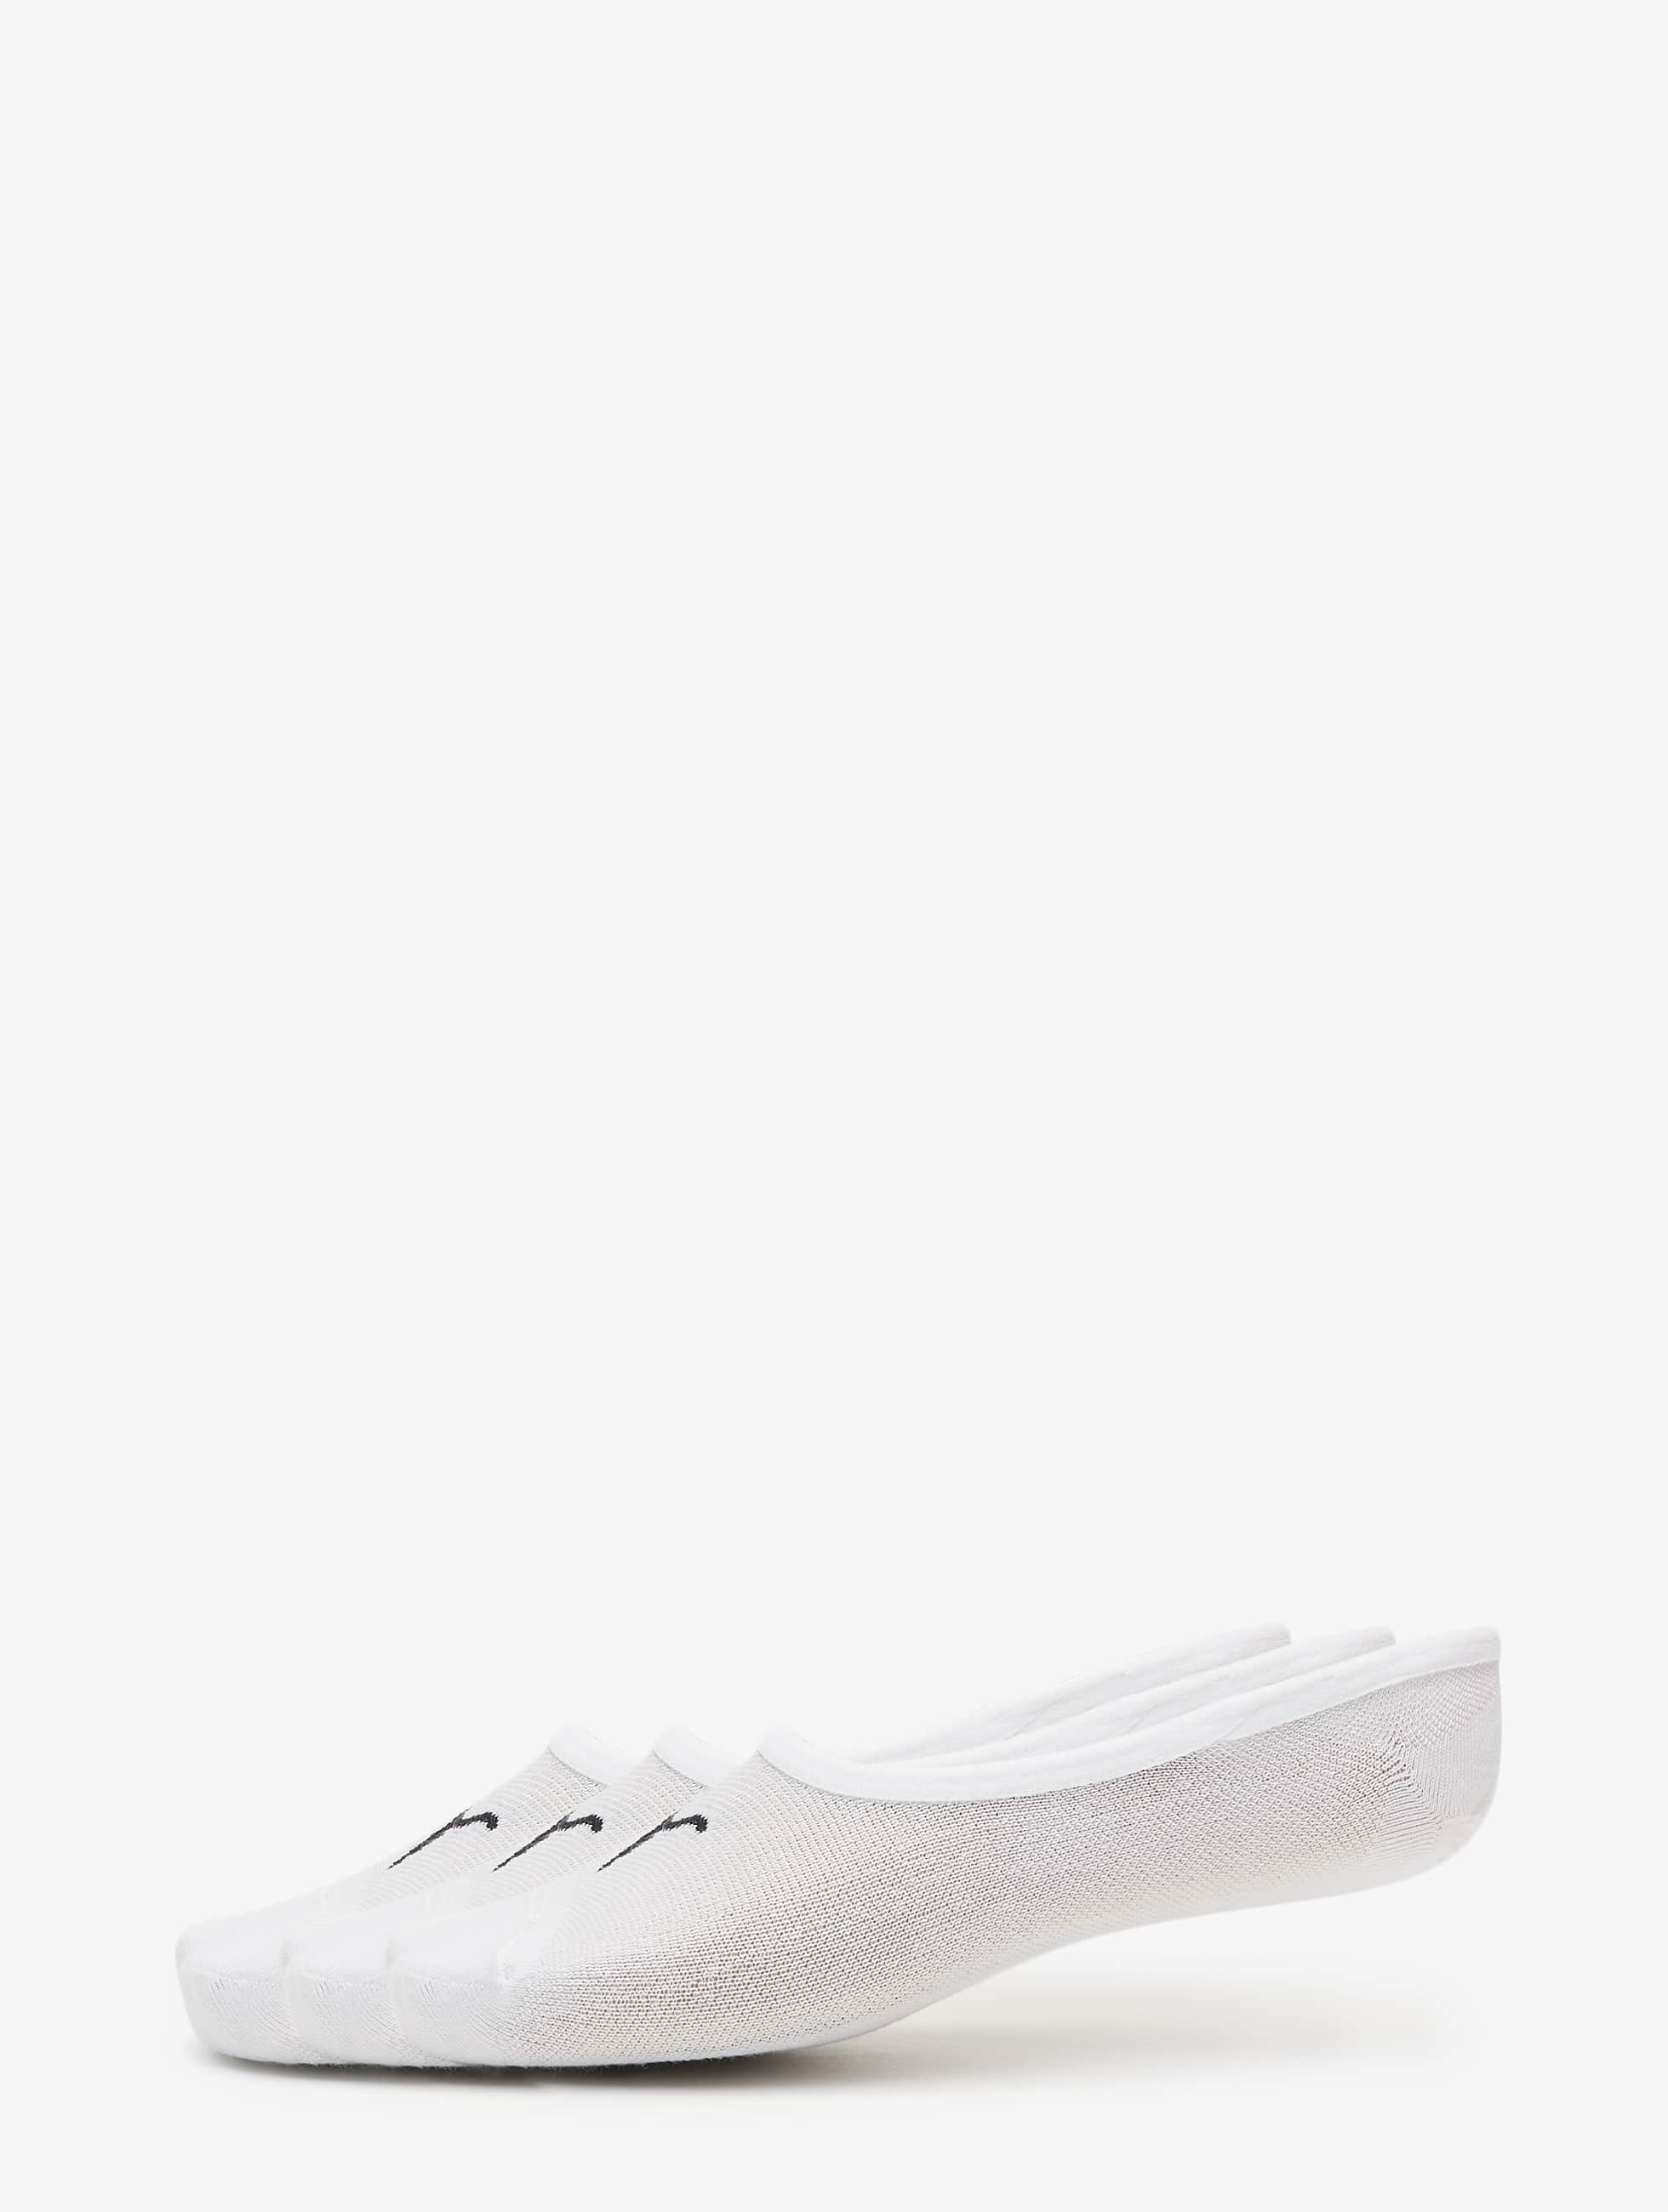 Puma Chaussettes 3-Pack Footies blanc